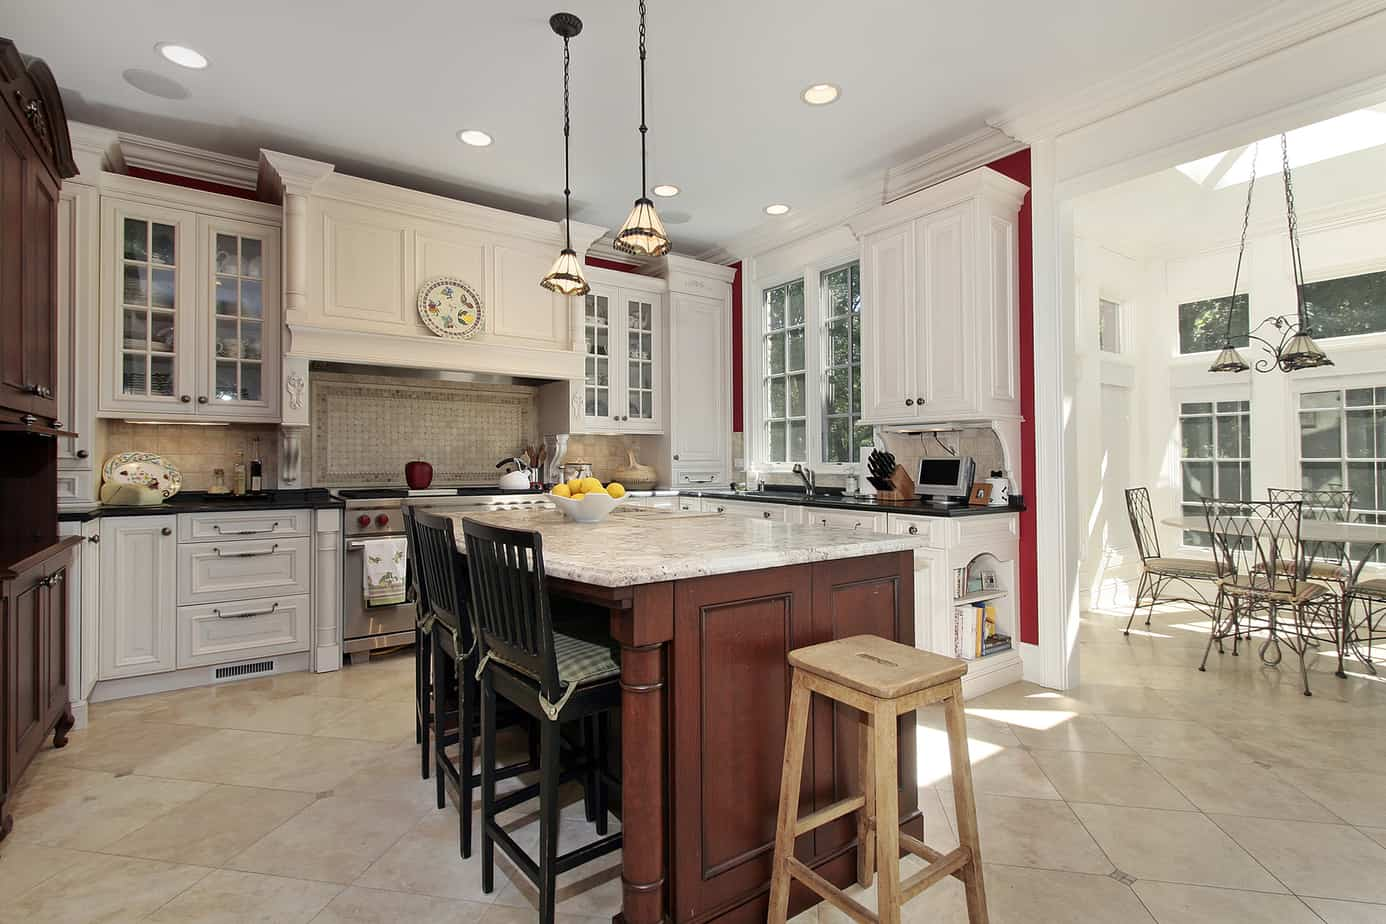 Cozy kitchen with separate eating area and skylight